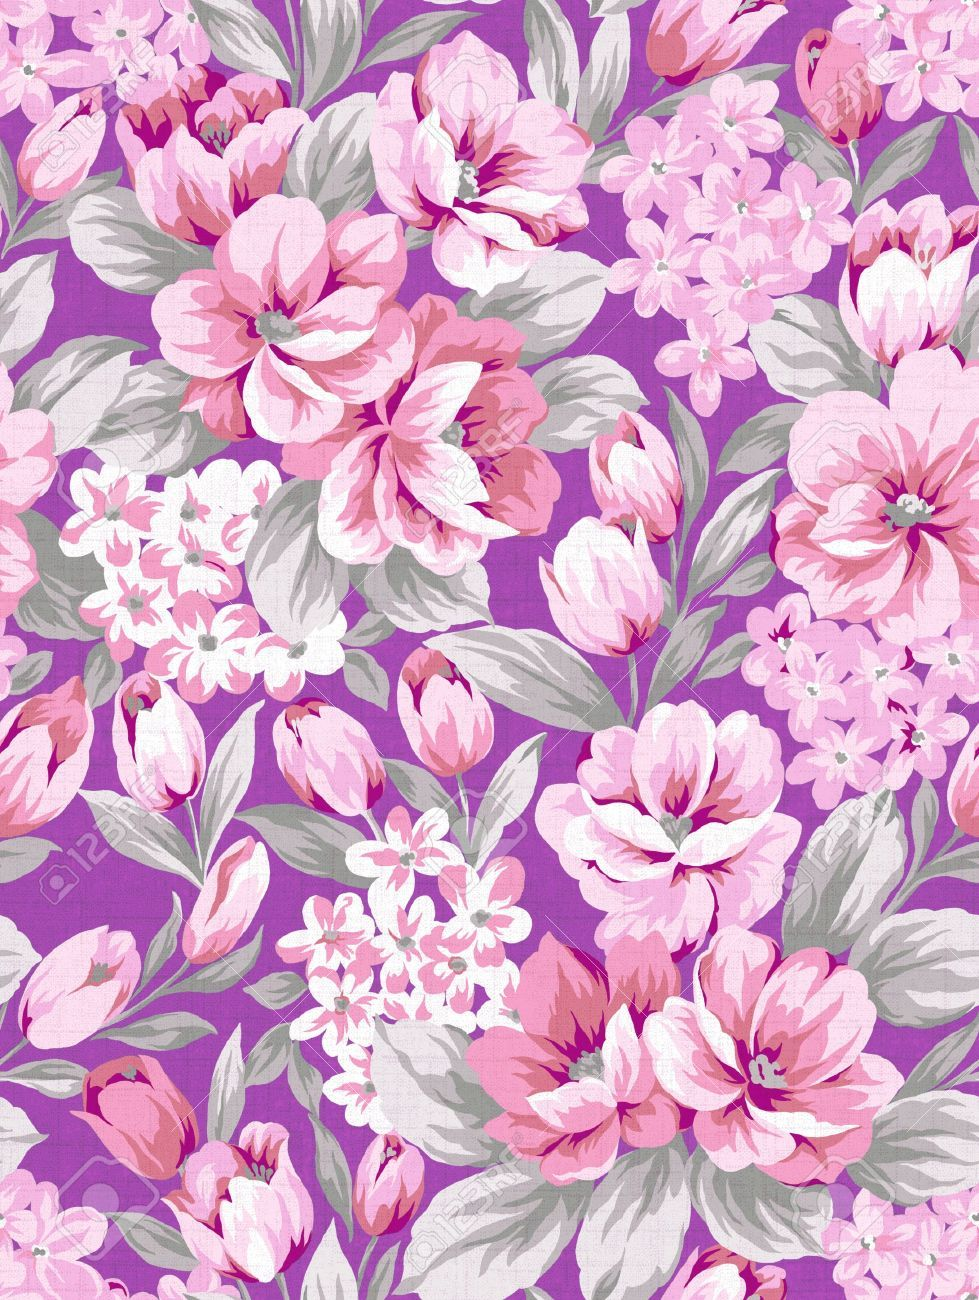 pinlilo n on floral patterns & prints | pinterest | prints